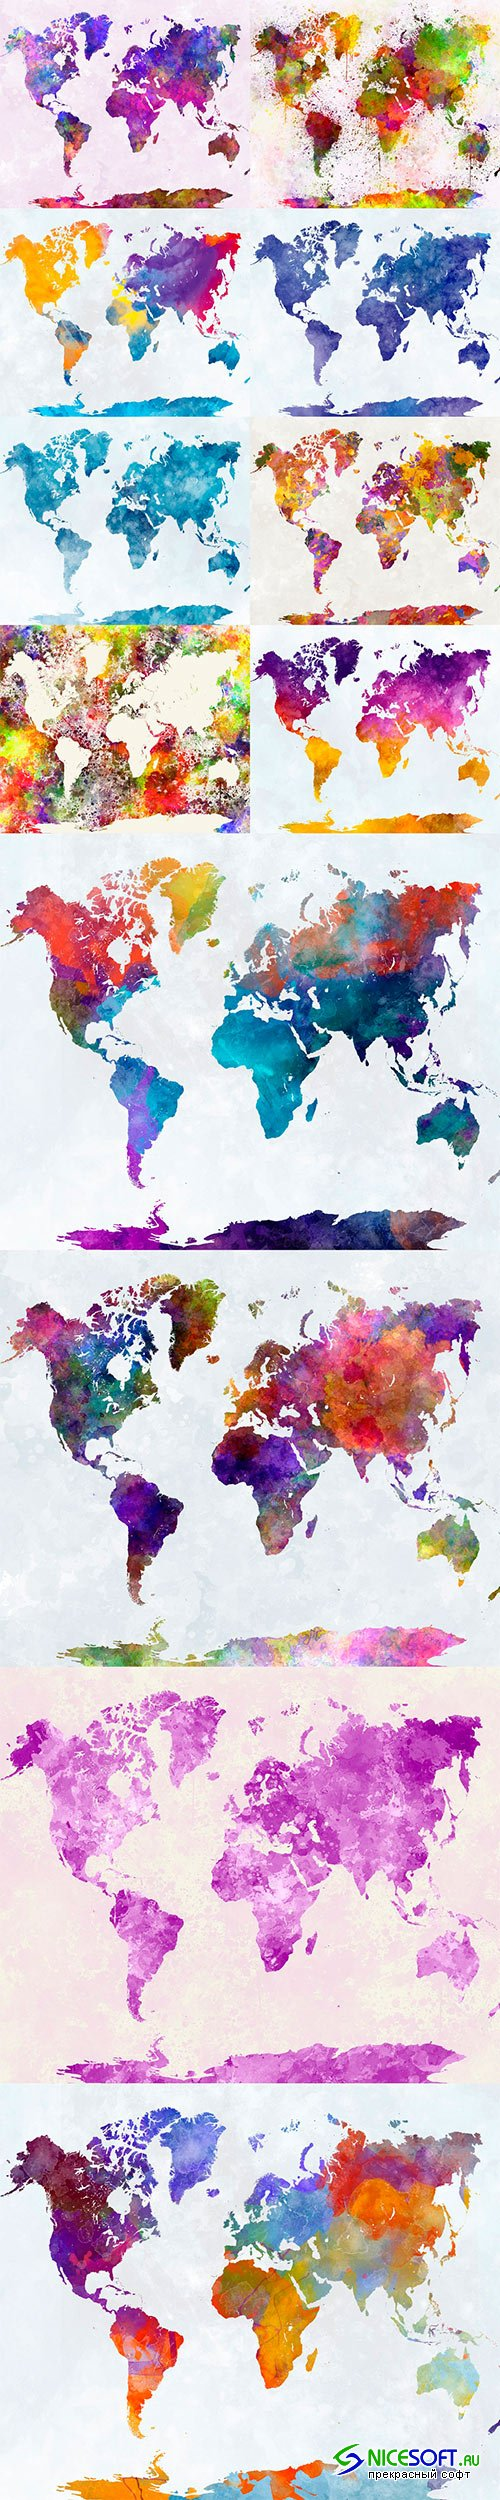 World map in watercolor - 12UHQ JPEG